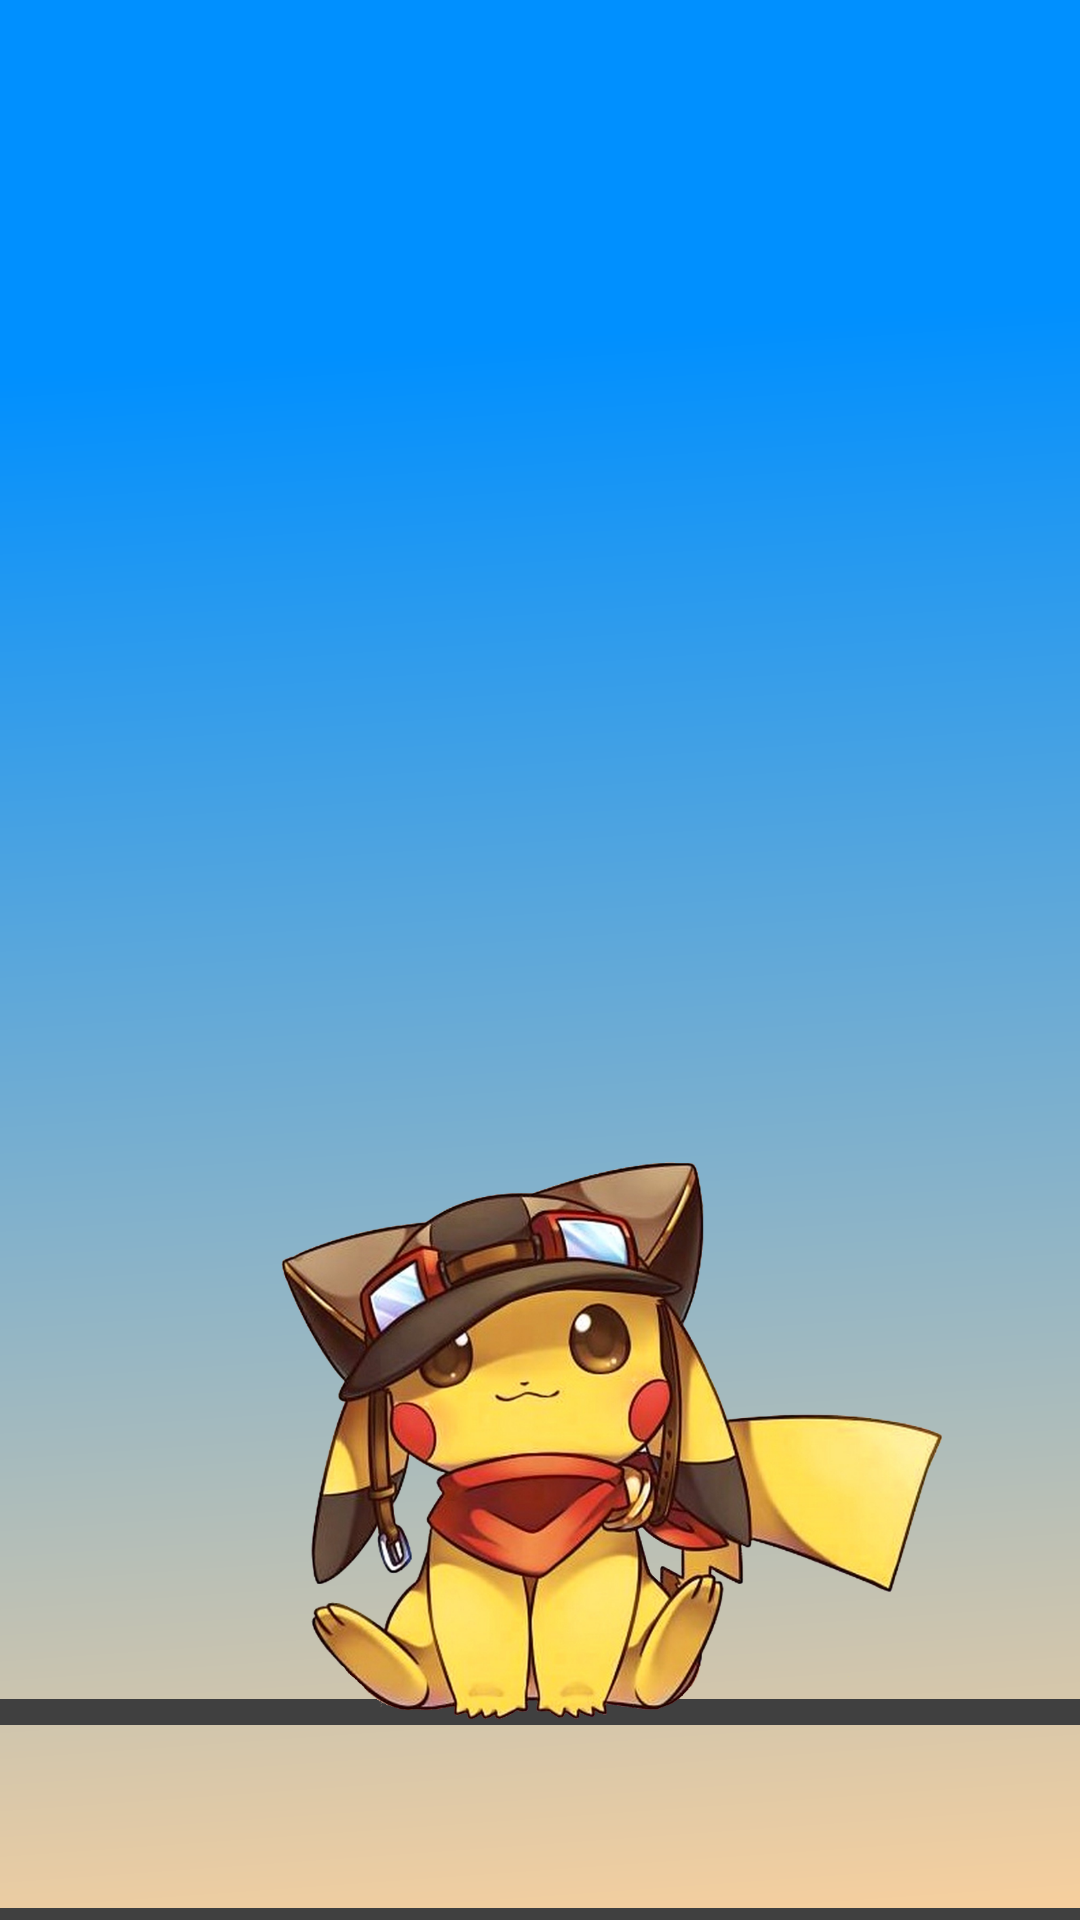 Pikachu HD Wallpapers for iPhone 7 | Wallpapers.Pictures